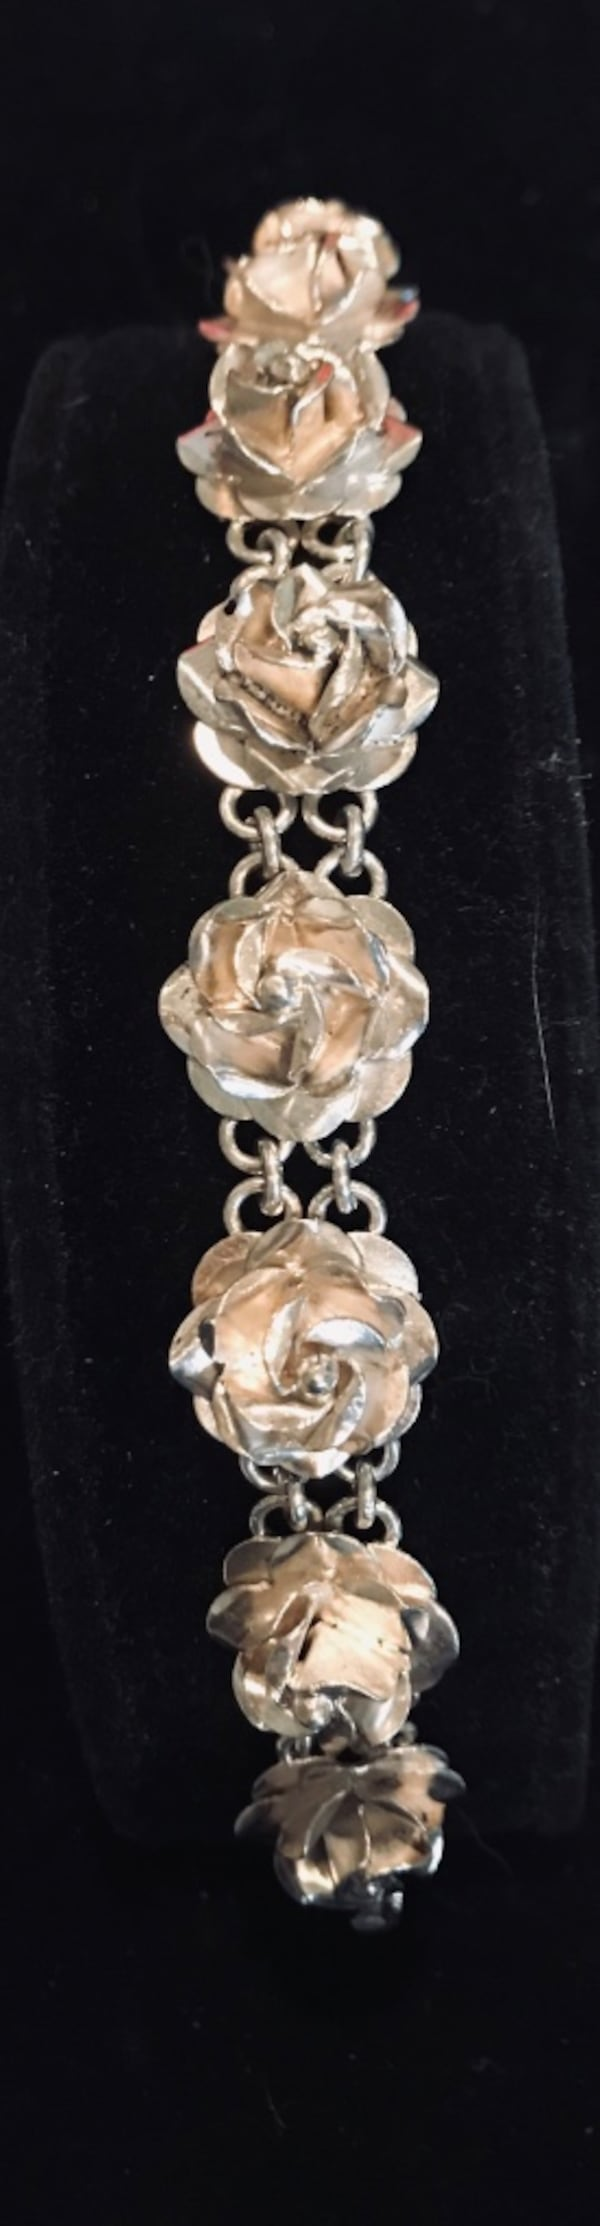 Sterling silver 3-d rose bracelet from Mexico 0b0ec277-a886-448c-986d-a1a8201d9fd3